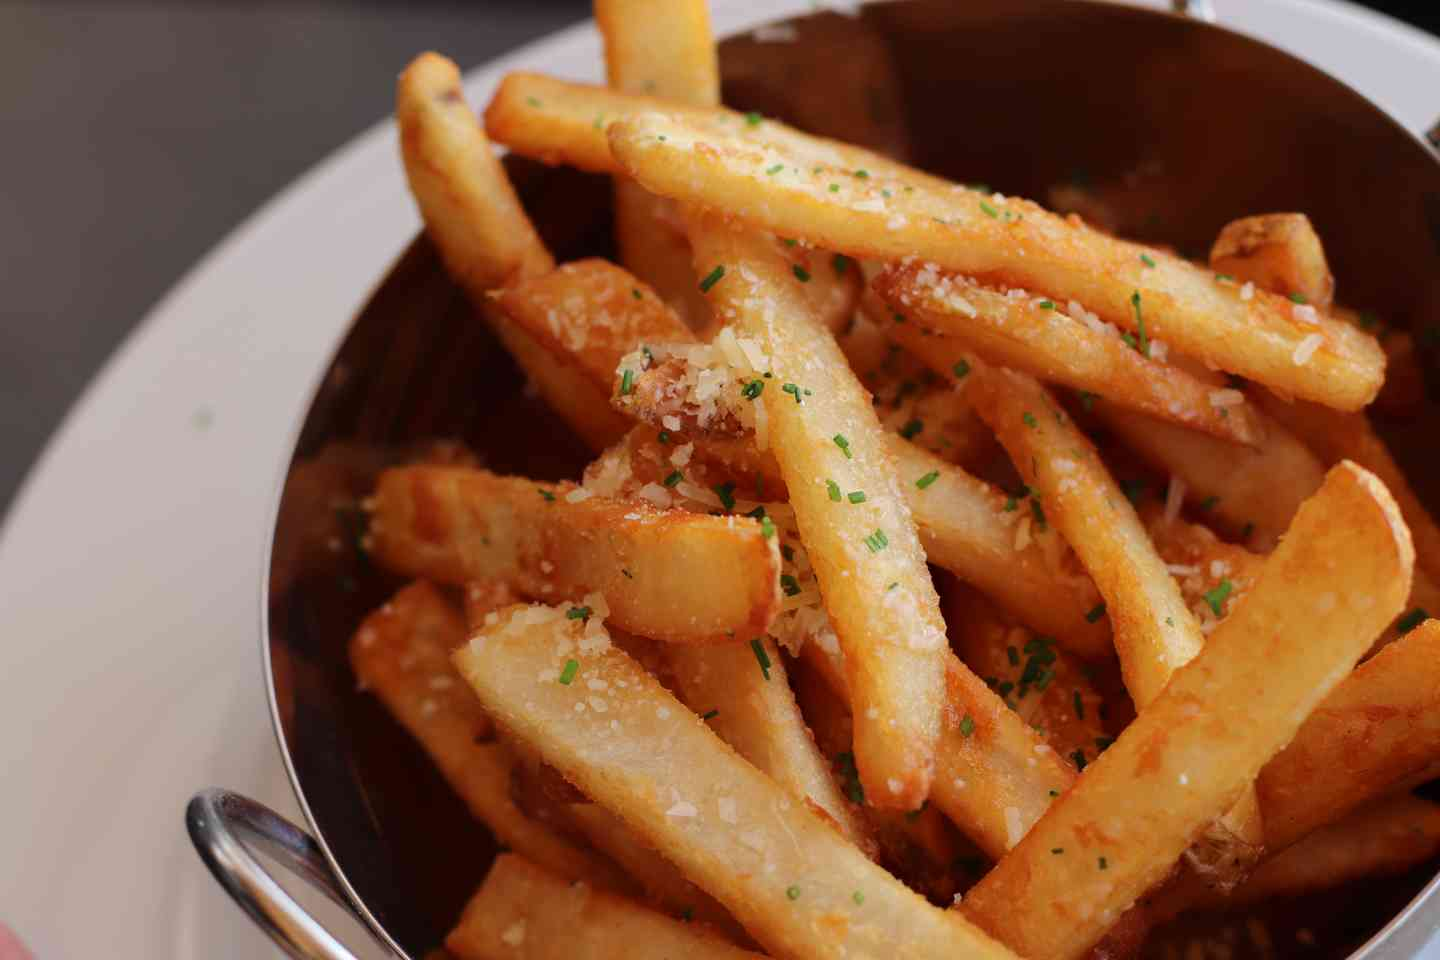 Truffle Garlic Fries